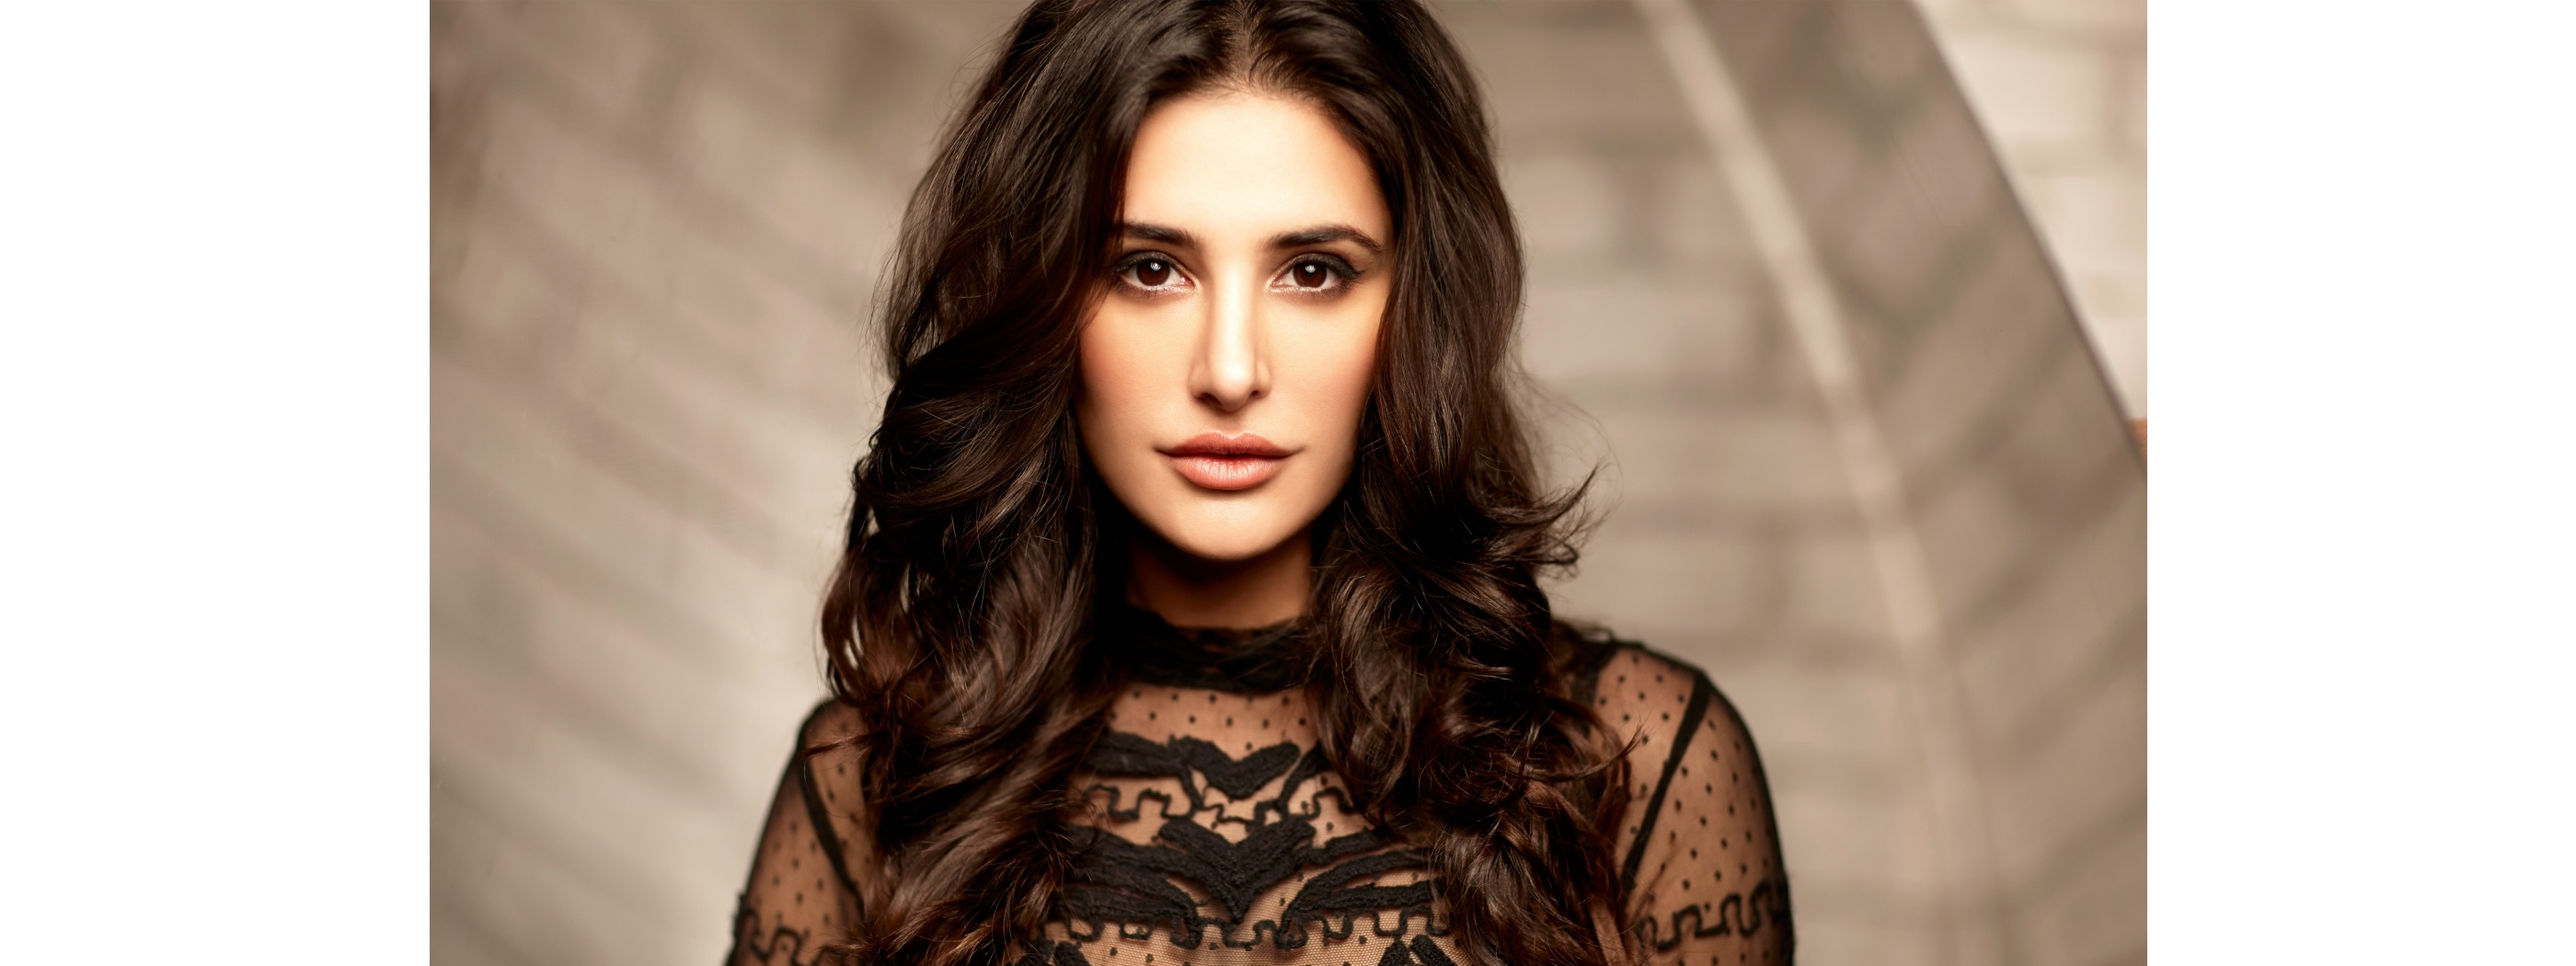 nargis fakhri bollywood hot indian actress full hd wallpaper 2800x1050 2800x1050